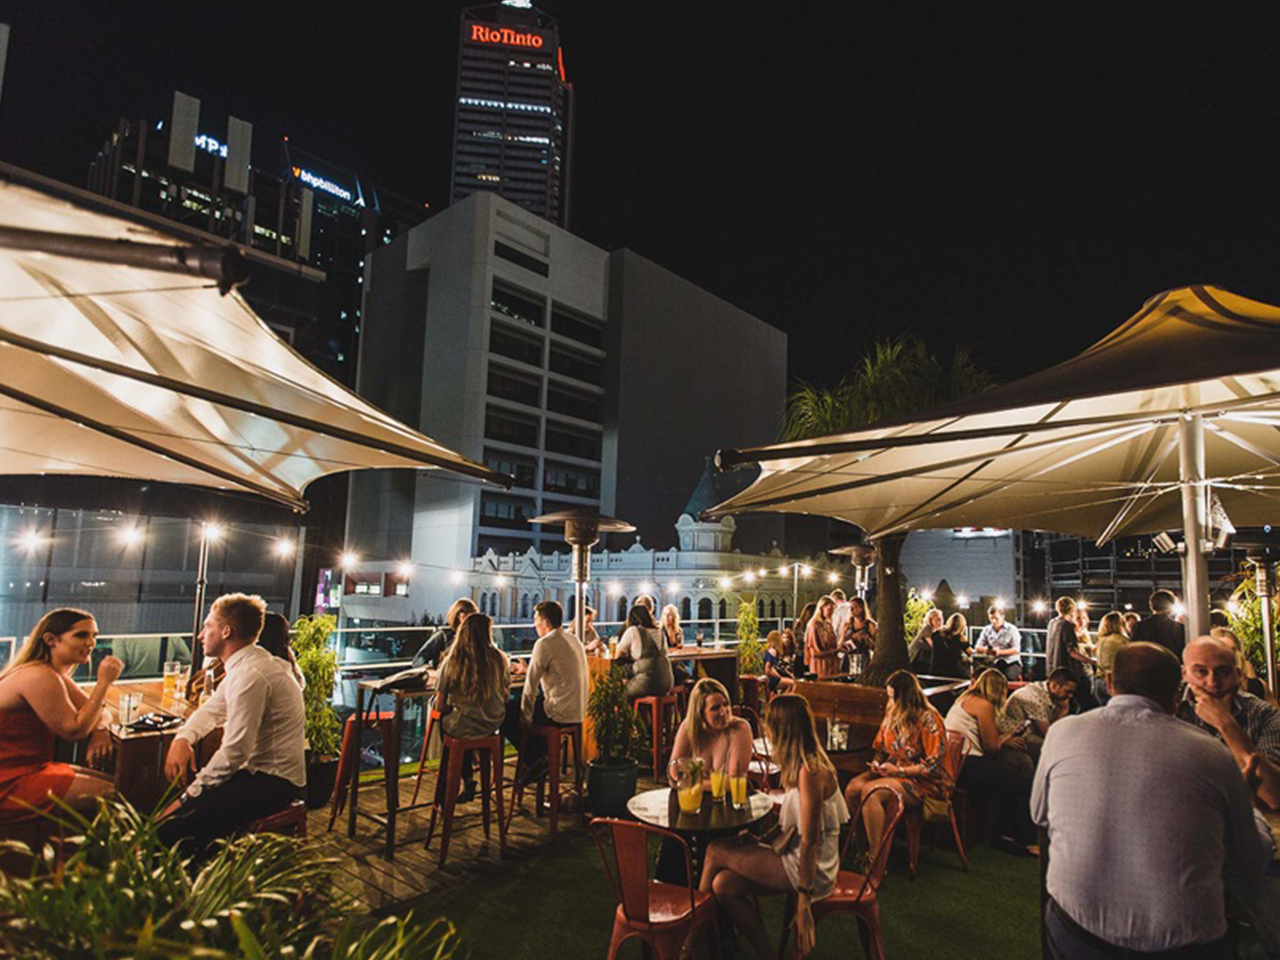 Guests Enjoying The Night In The Open Air Rooftop Perth Venues